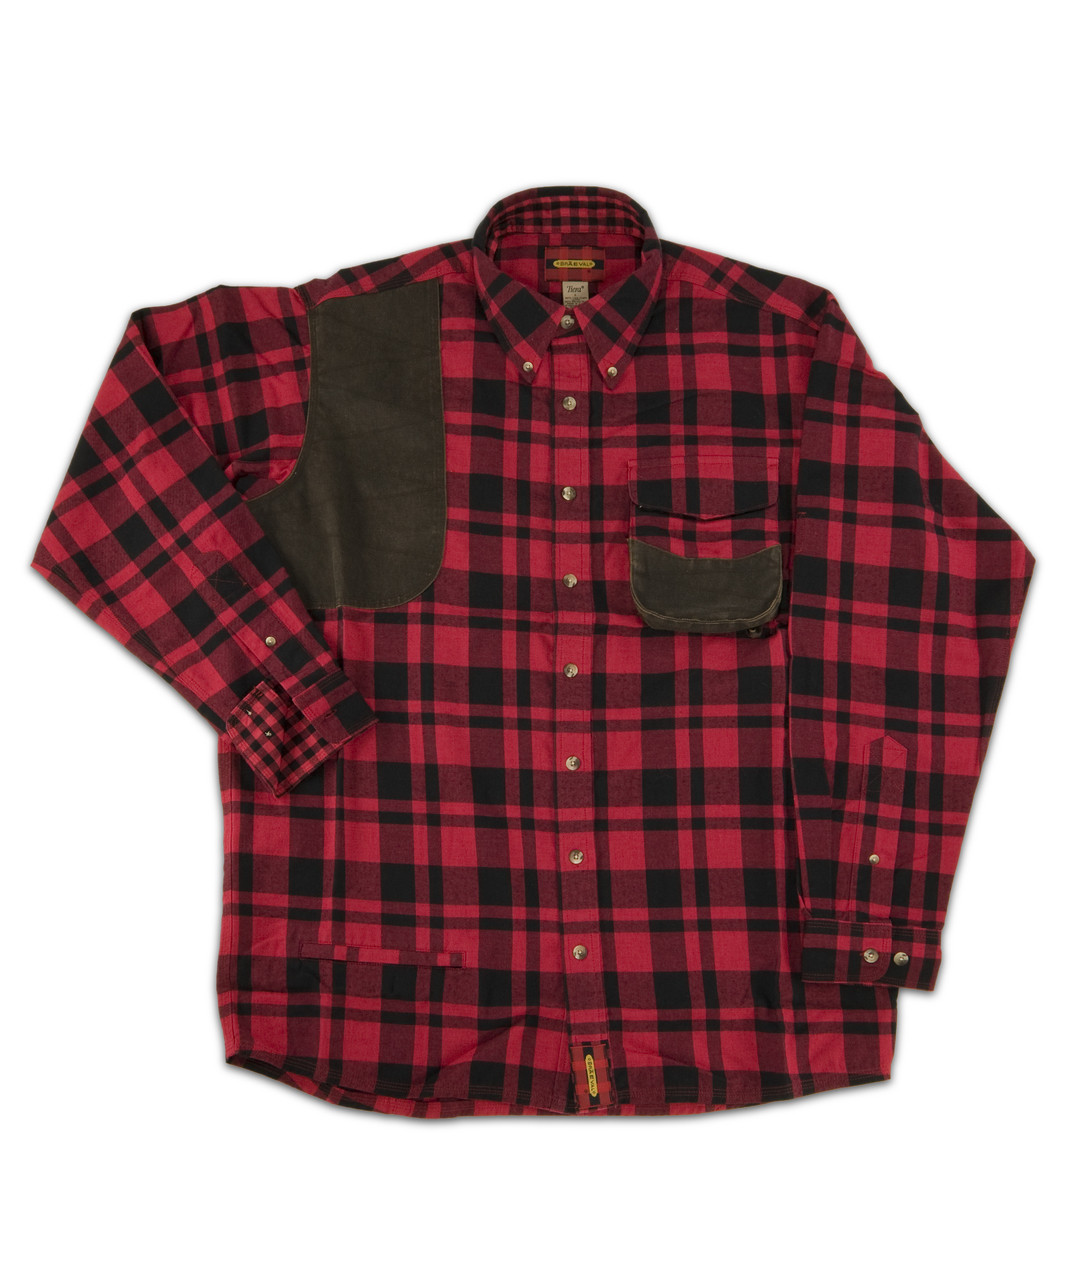 Artemis - Rob Roy Highlander Plaid - 25% OFF